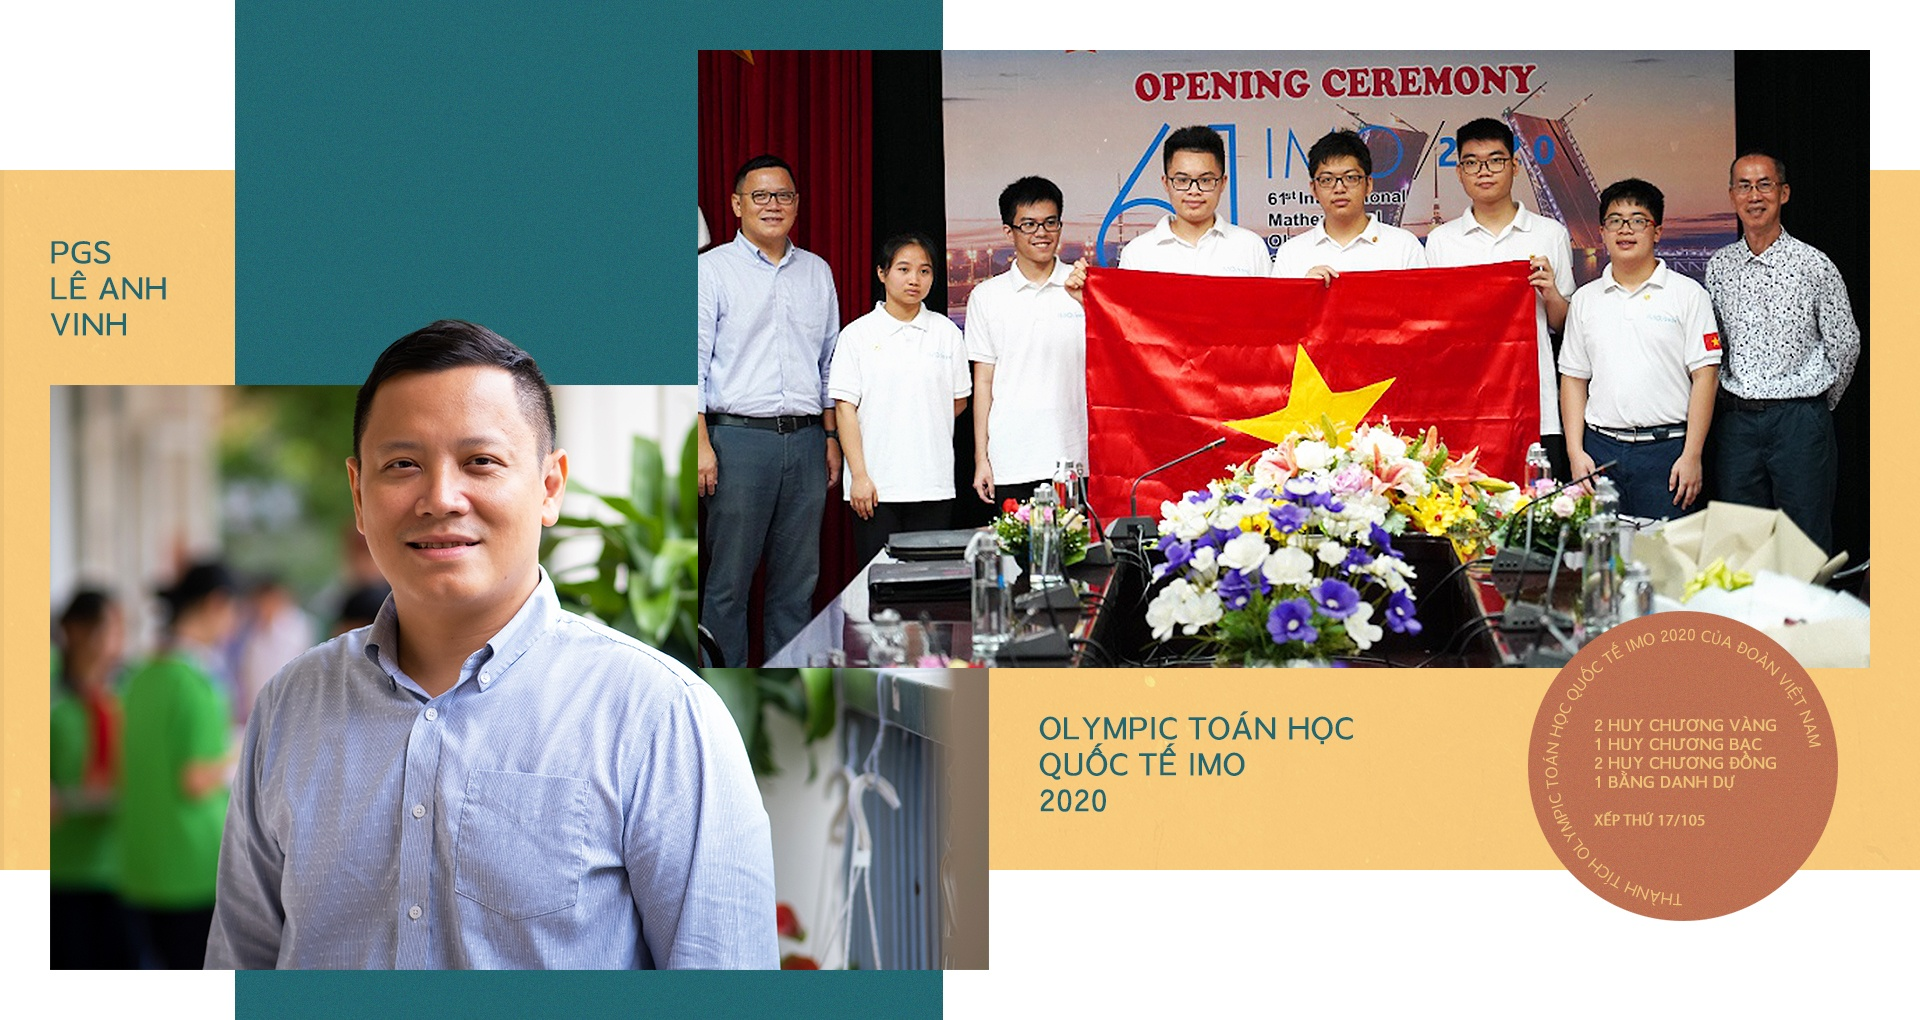 Olympic Toan quoc te 2020 anh 4